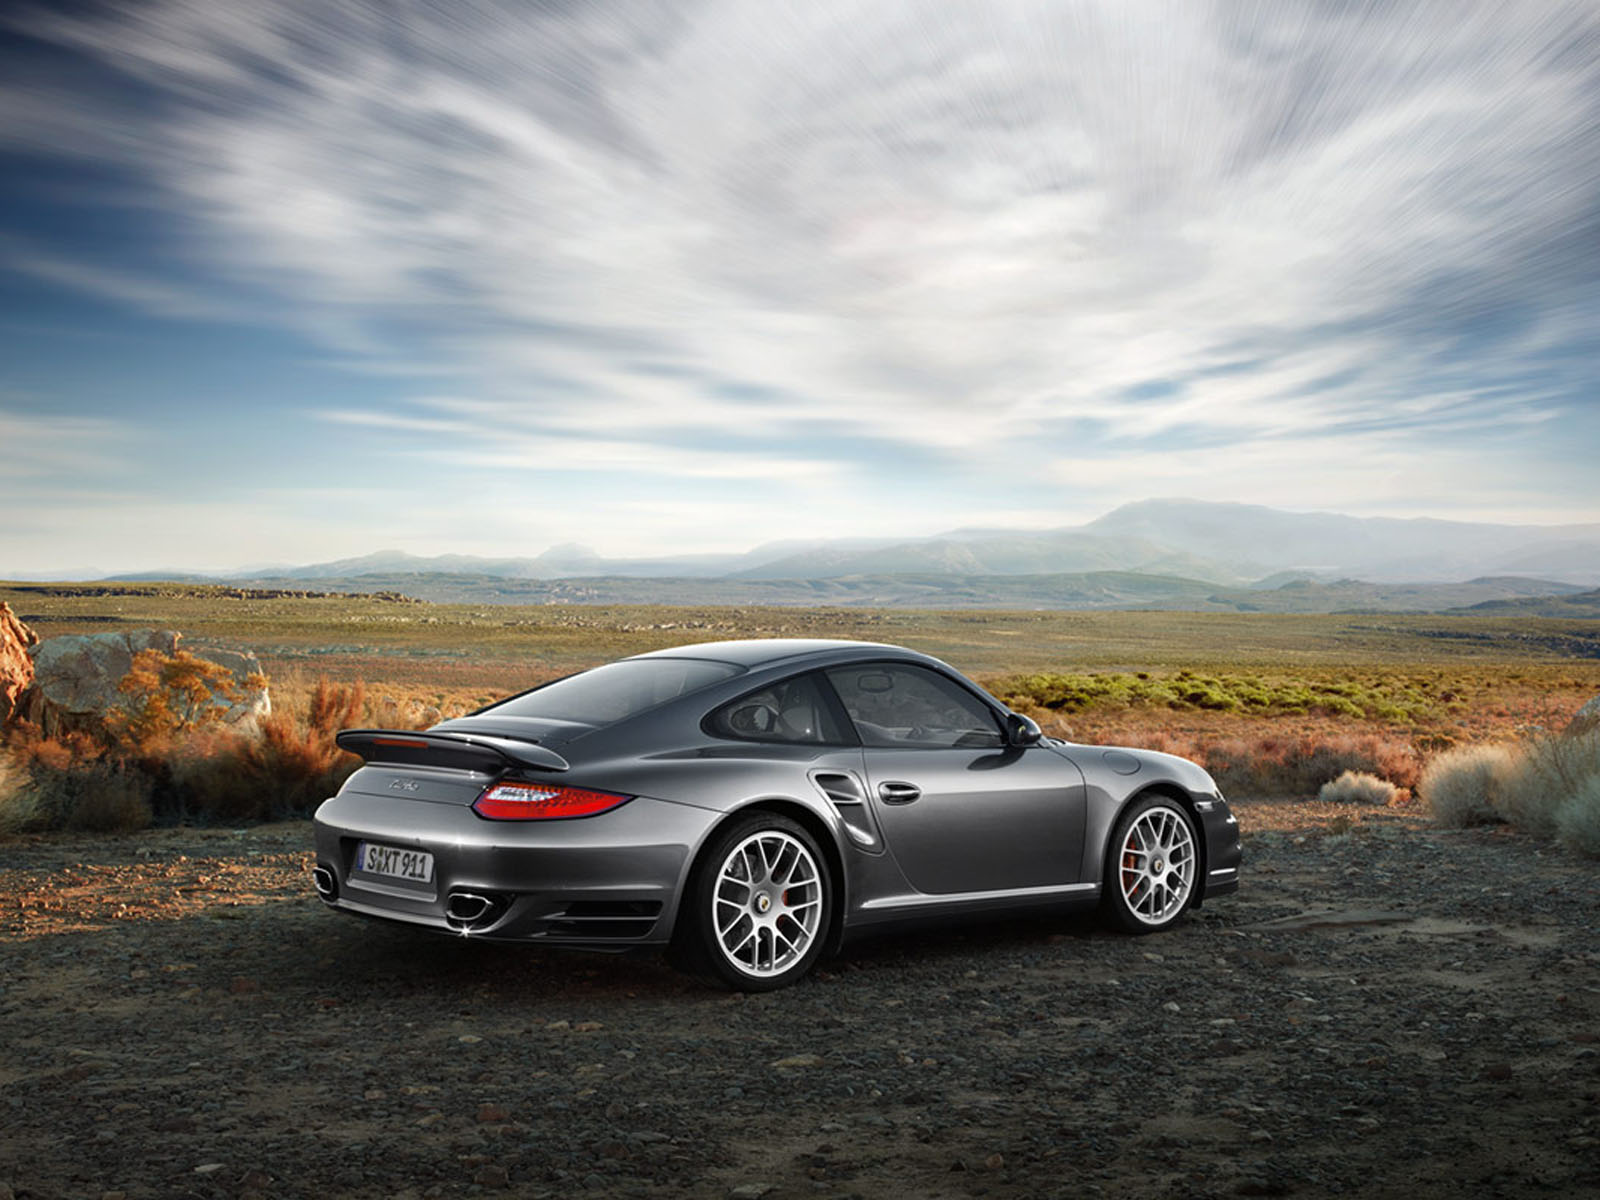 wallpapers Porsche 911 Turbo Car Wallpapers 1600x1200